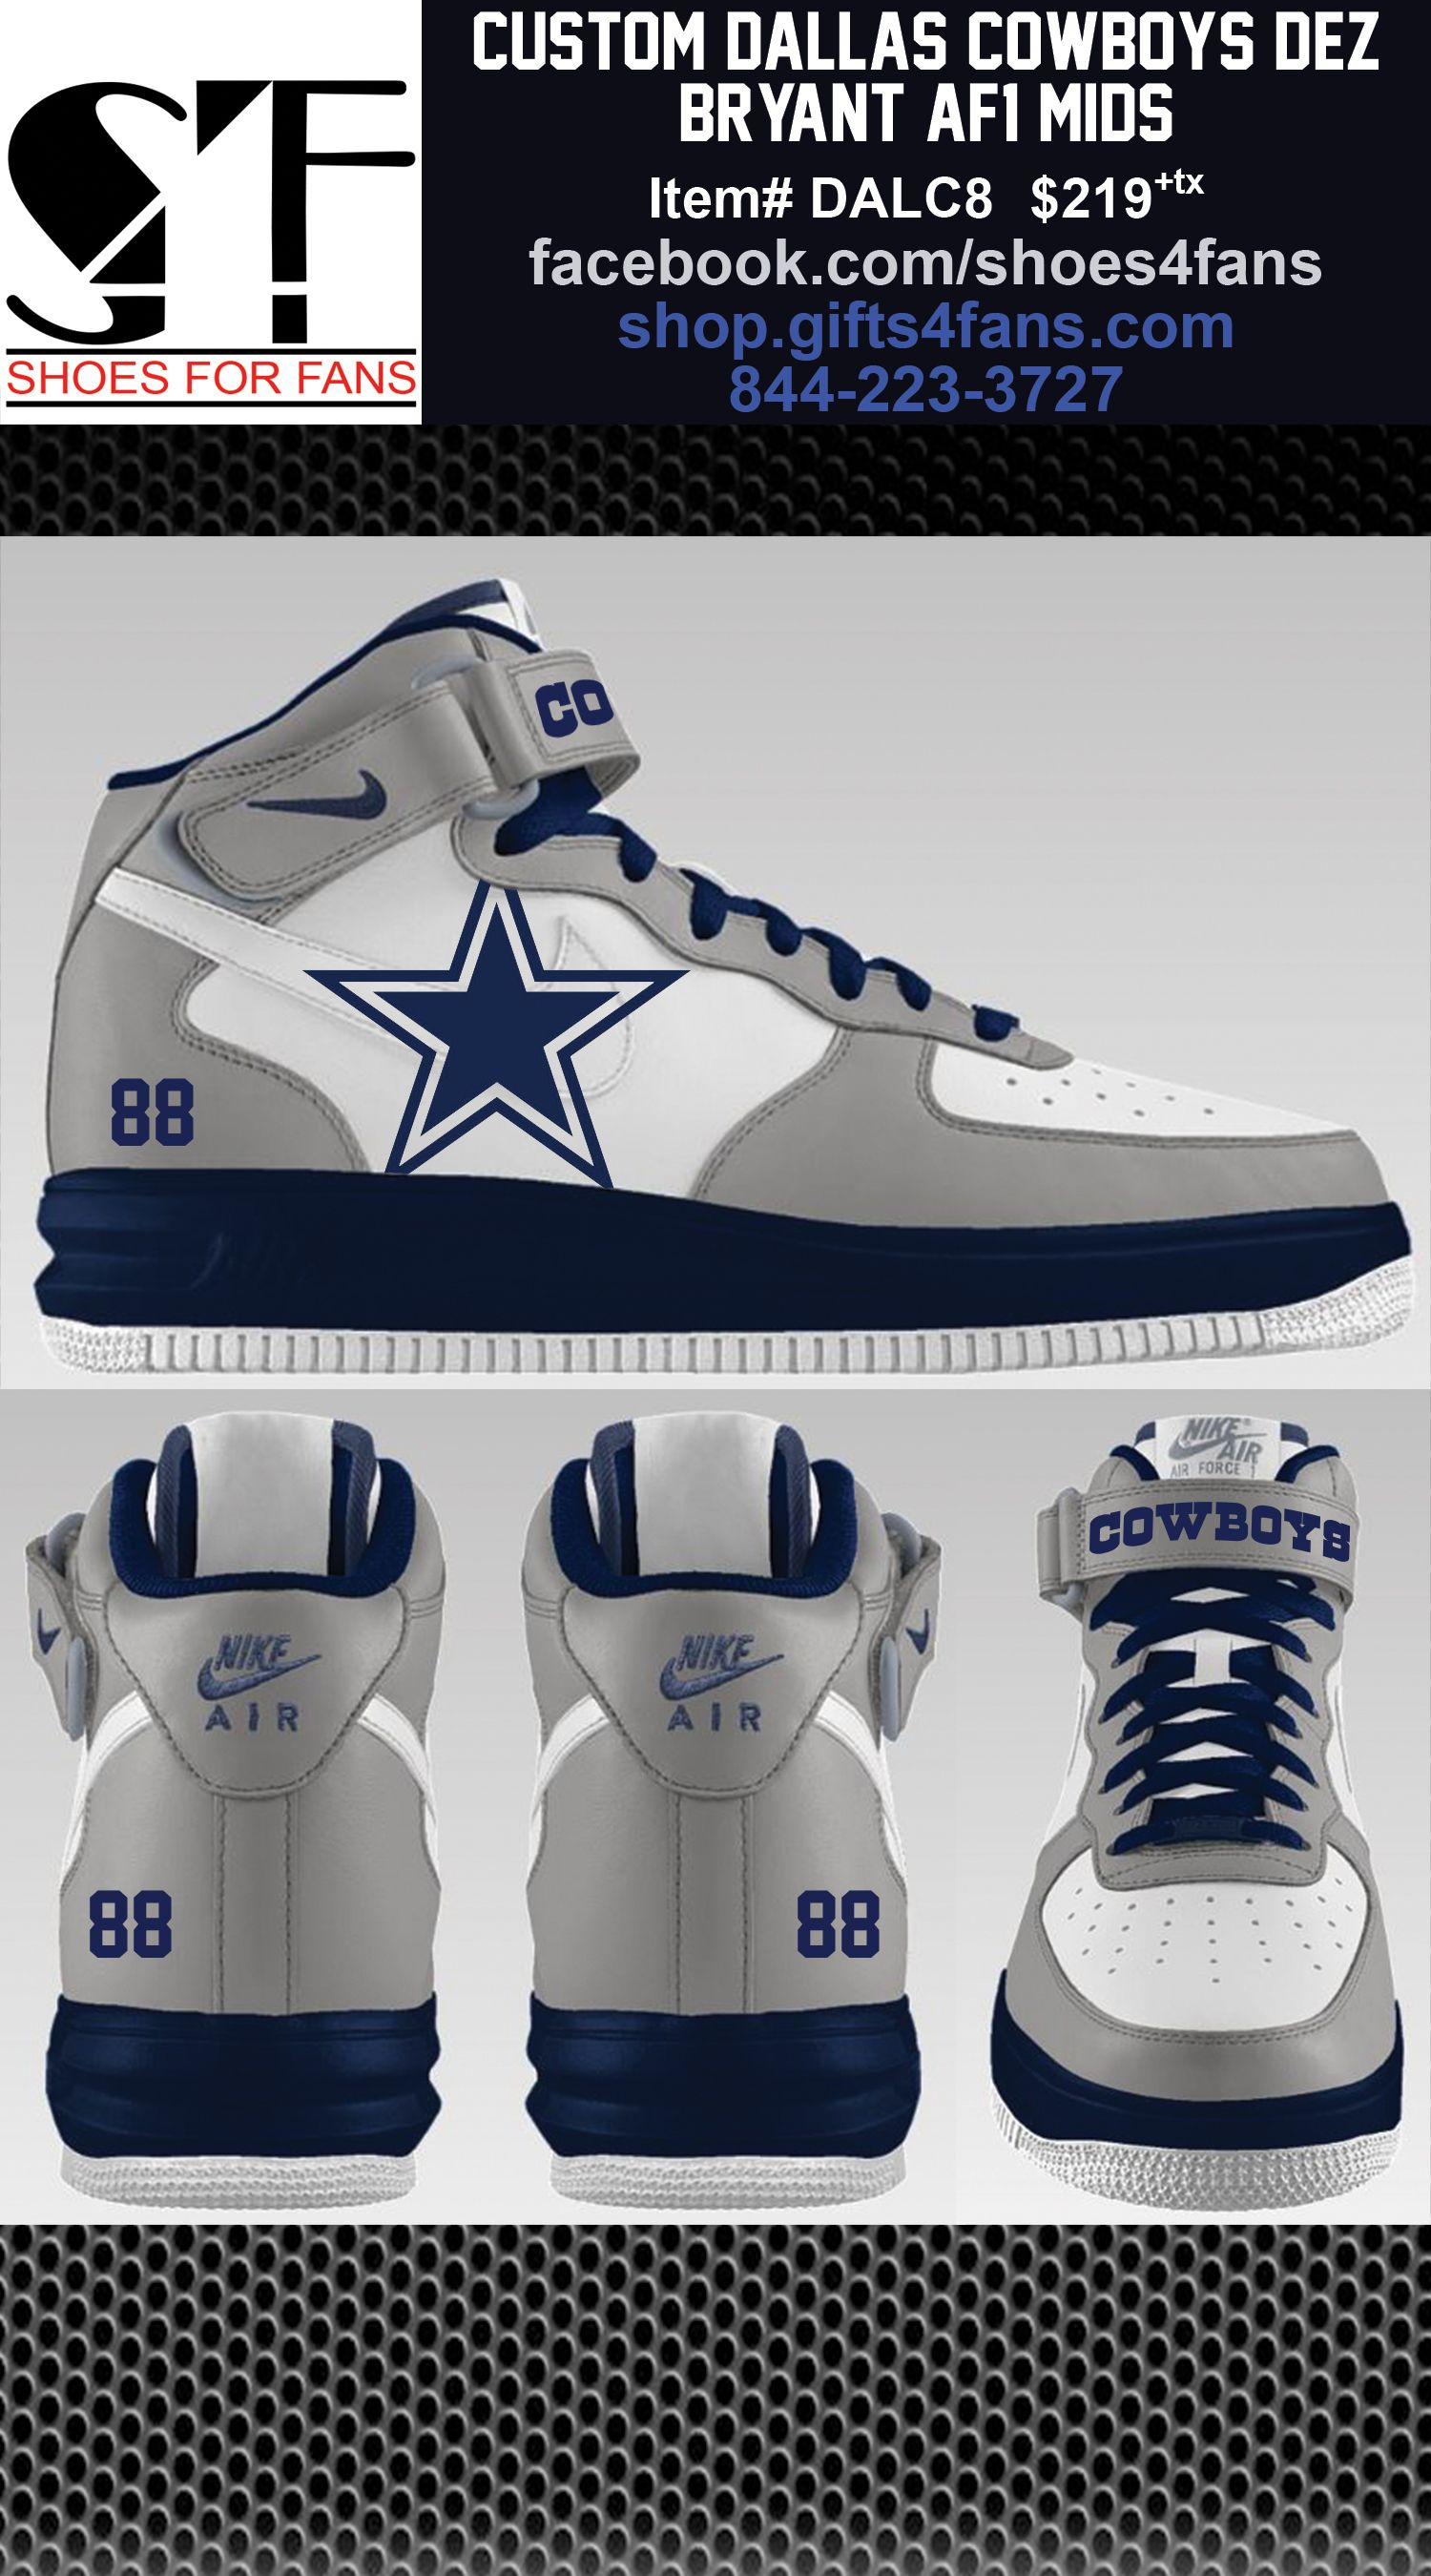 dallas cowboys nike air force one dez bryant edition order at